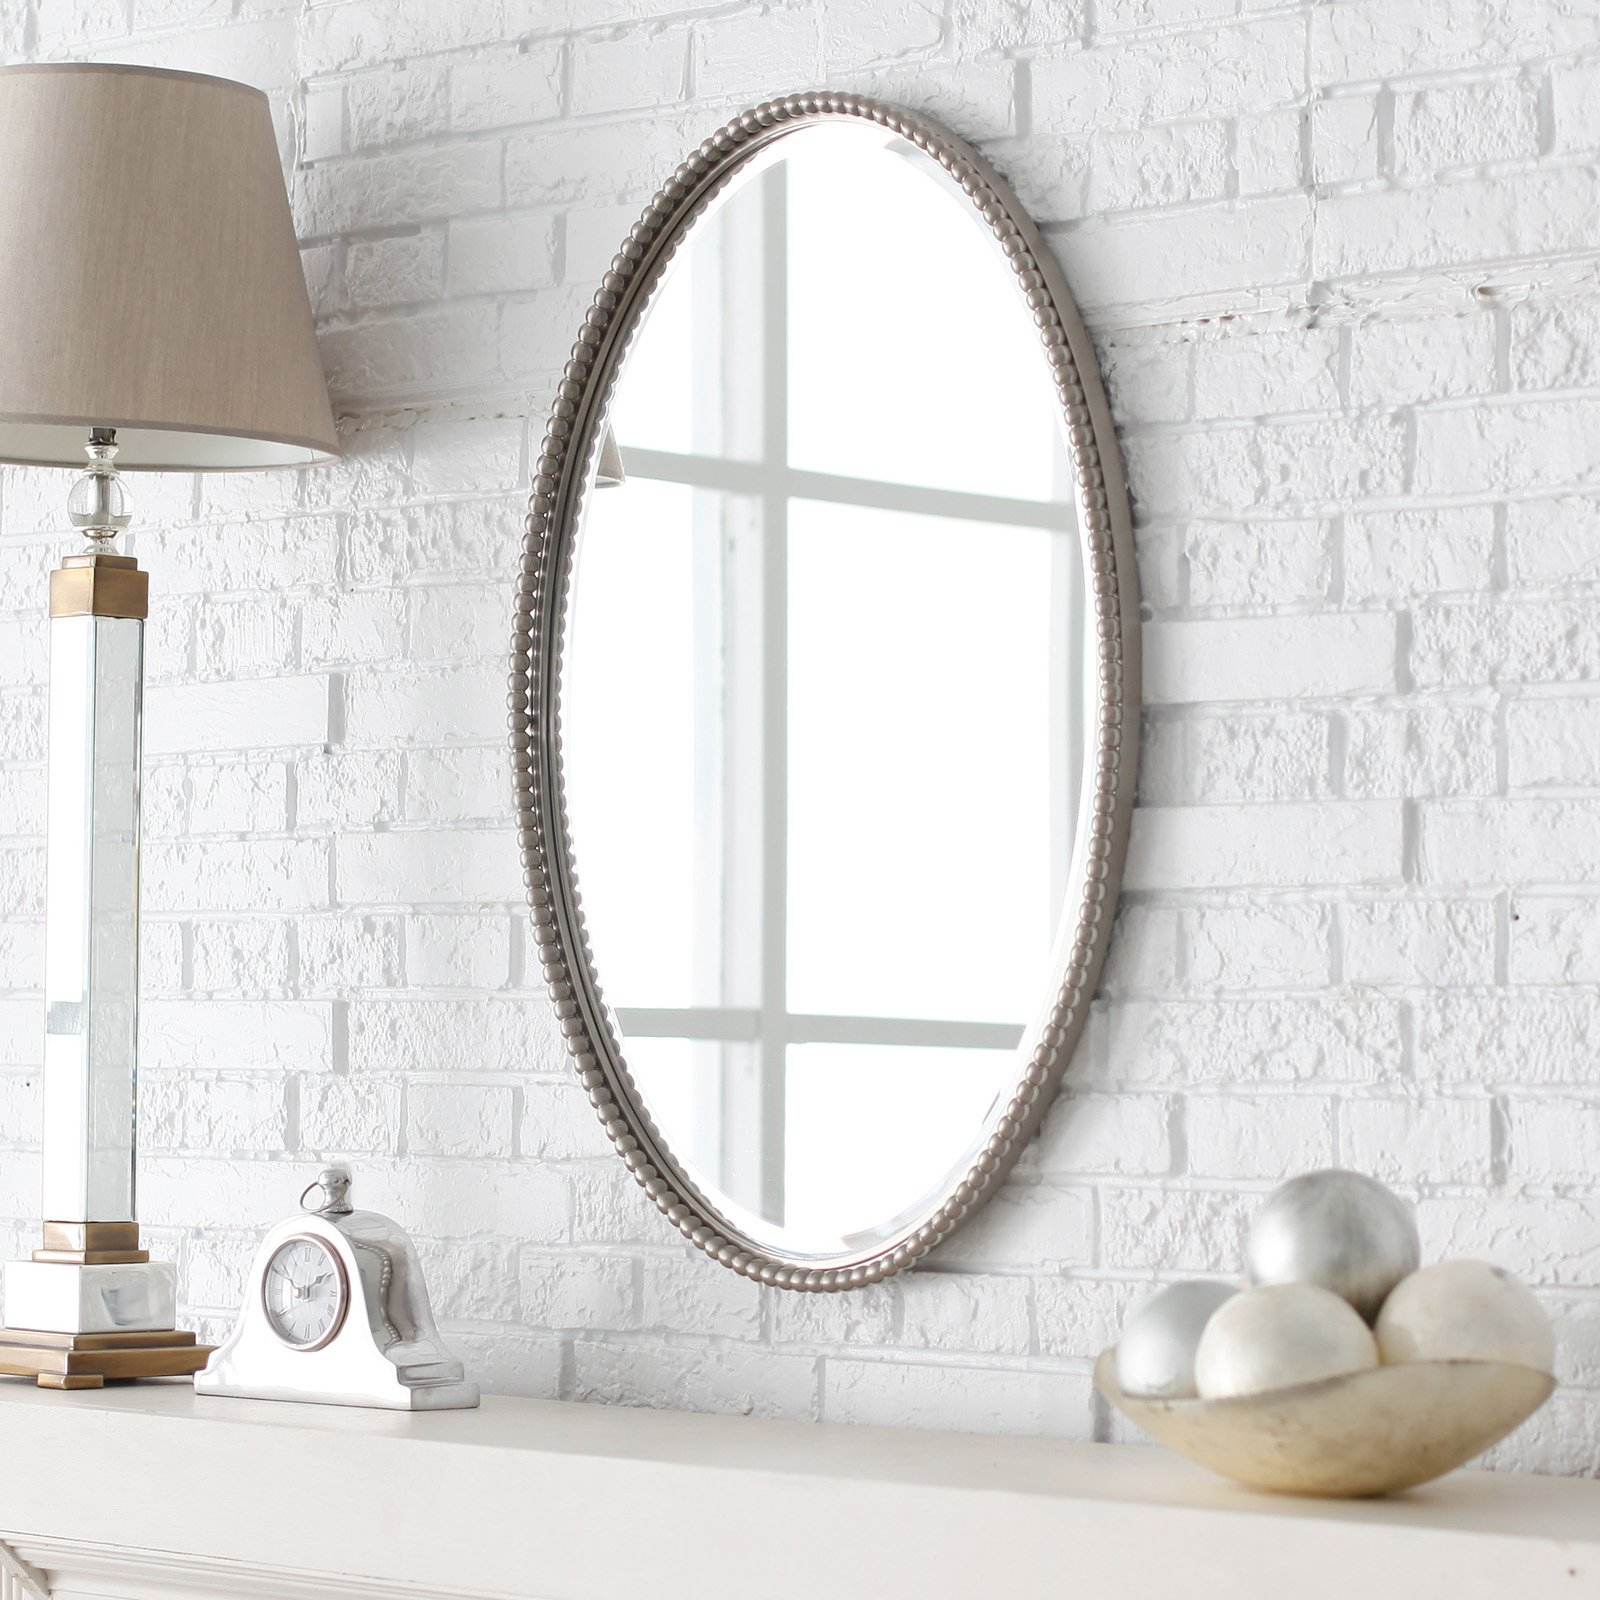 Small Oval Wall Mirrors With Regard To Recent Delightful Small Oval Beveled Mirror Shaving Ideas Depot Frame (Gallery 9 of 20)